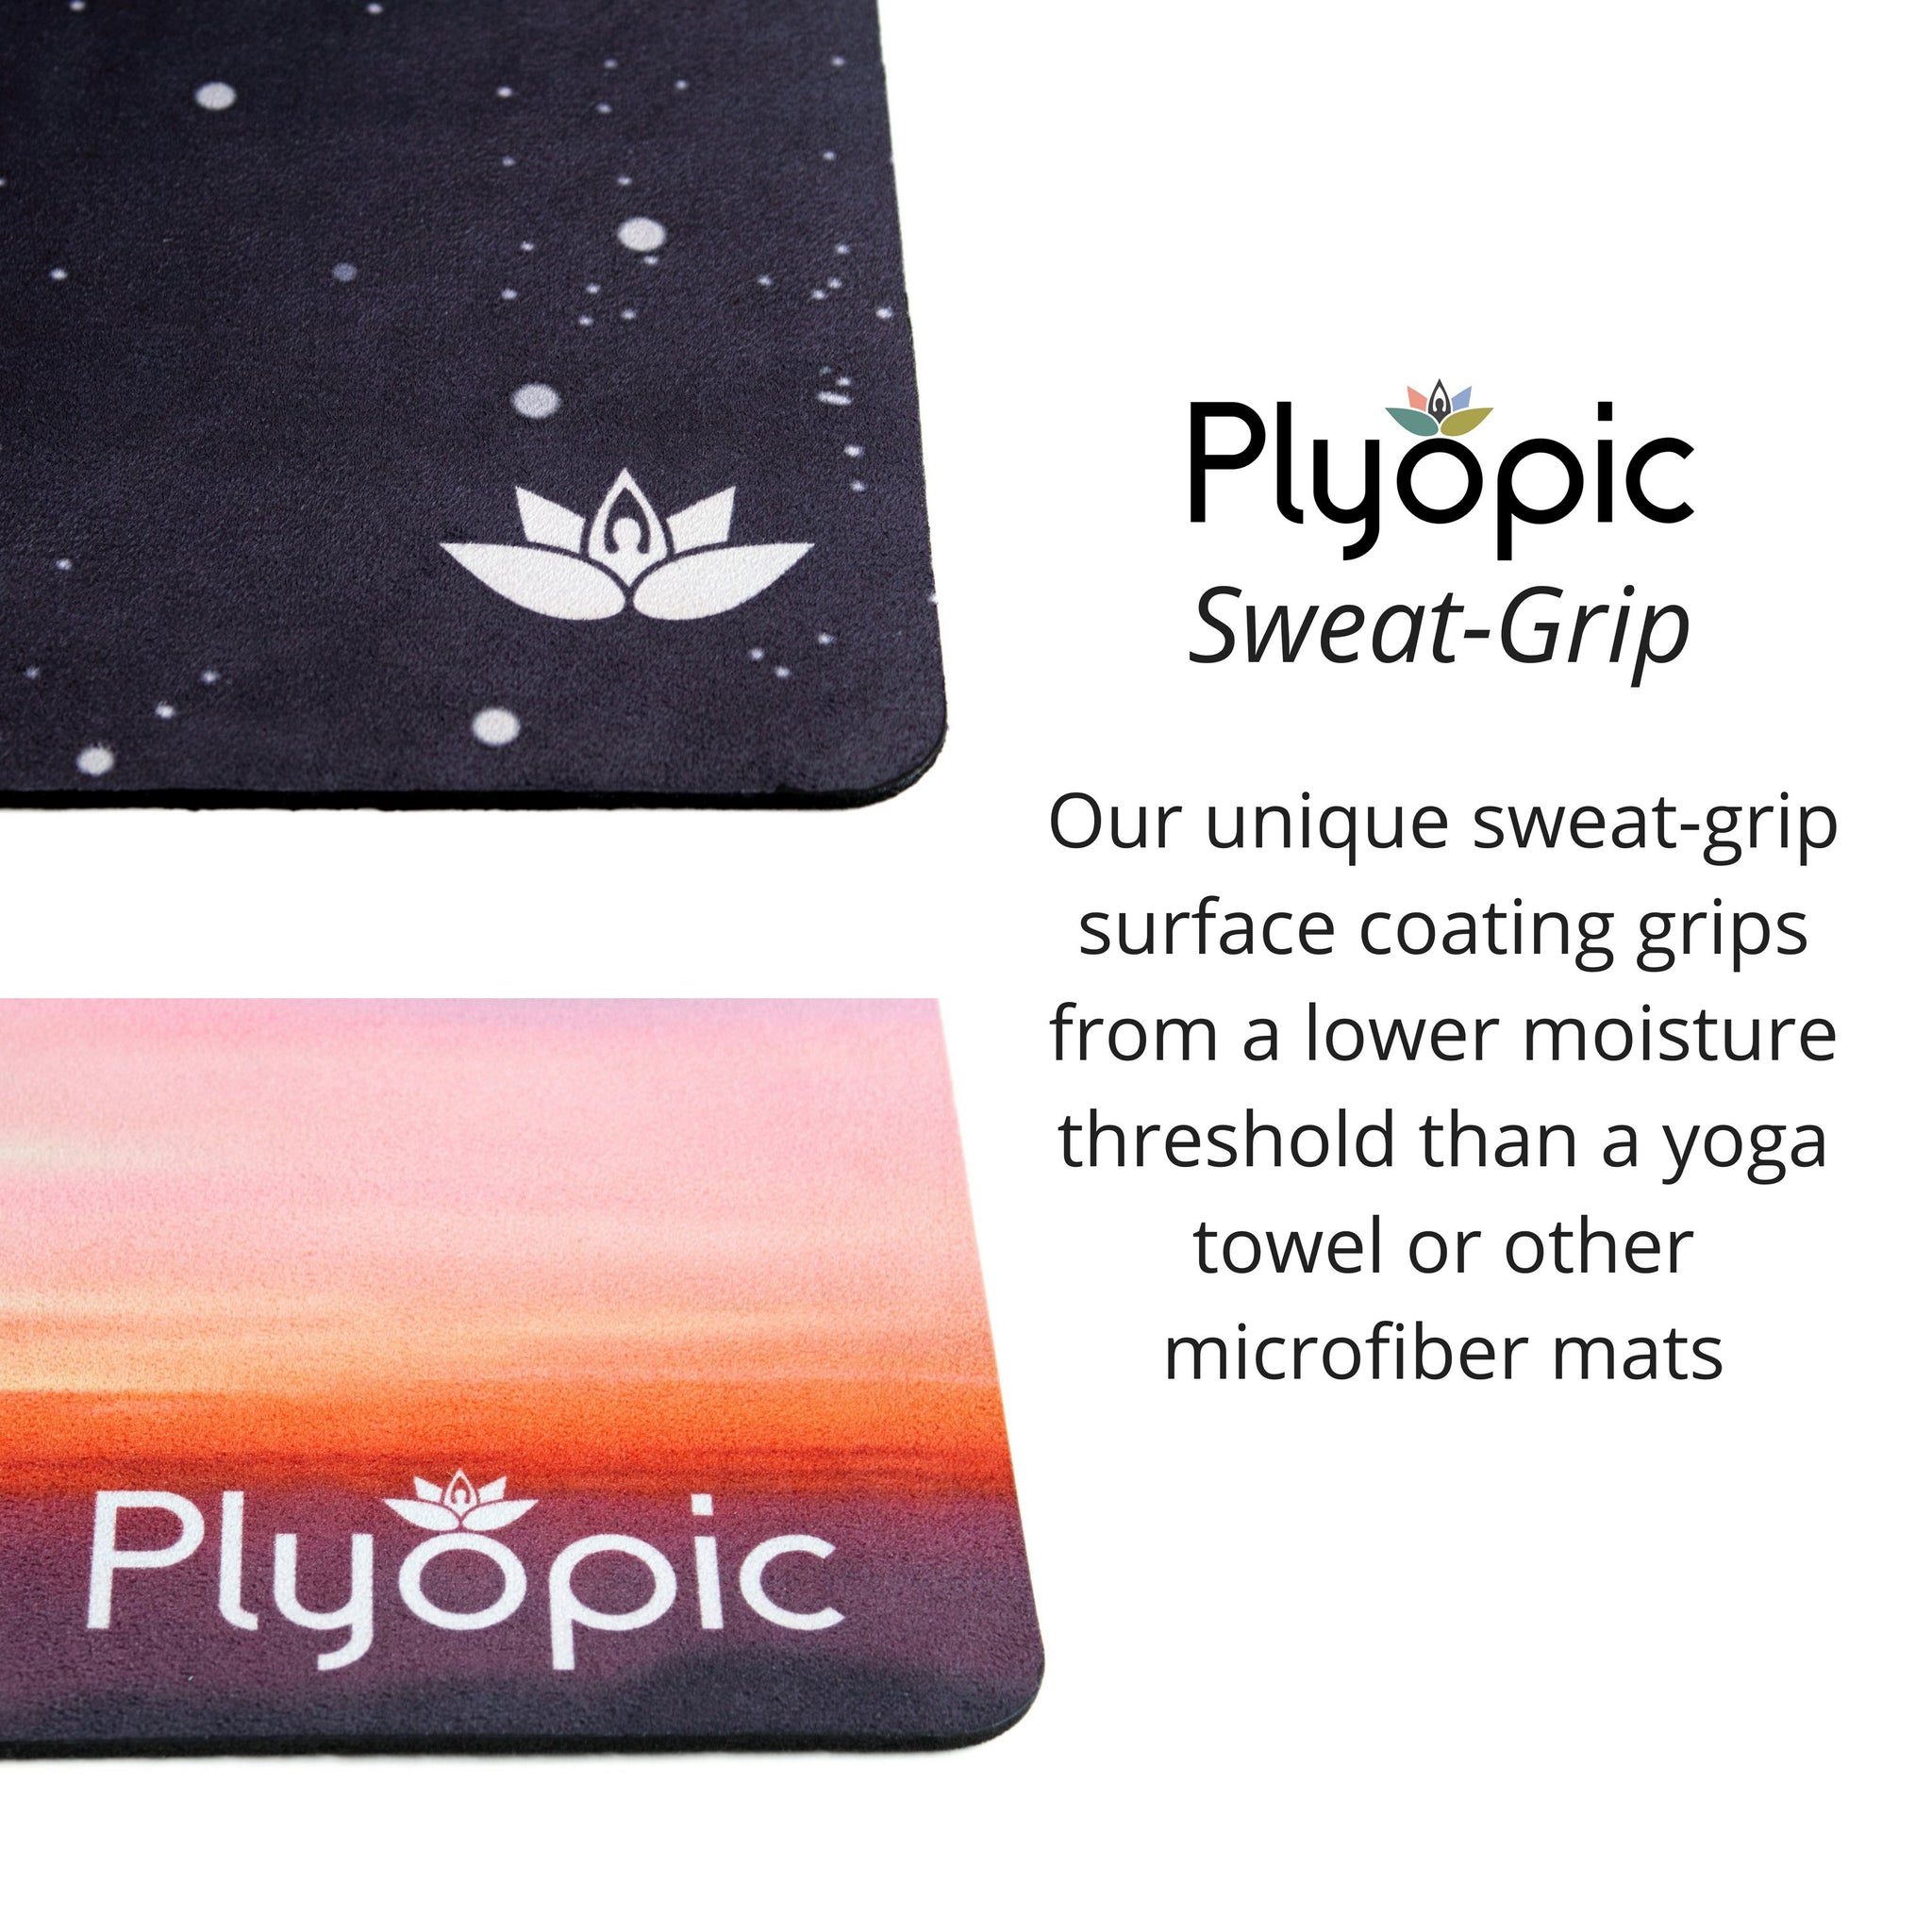 Plyopic-All In One Yoga Mat Stratospheric-Yoga Mat